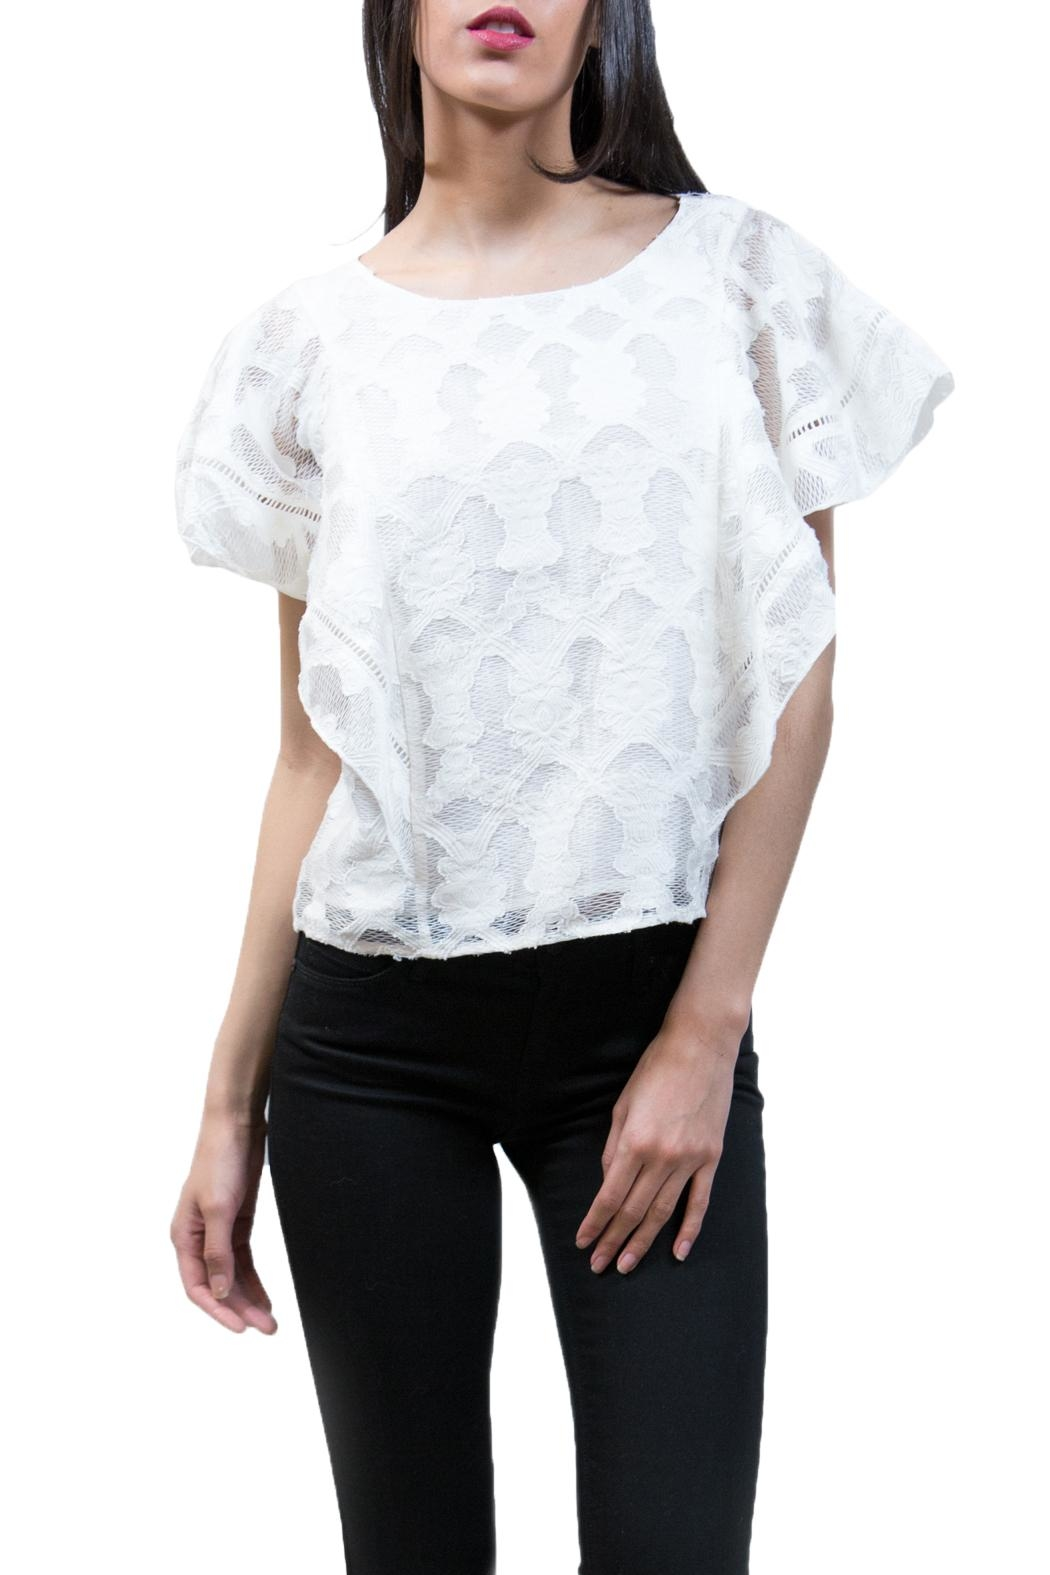 Ark & Co. Embroidered Lace Top - Main Image